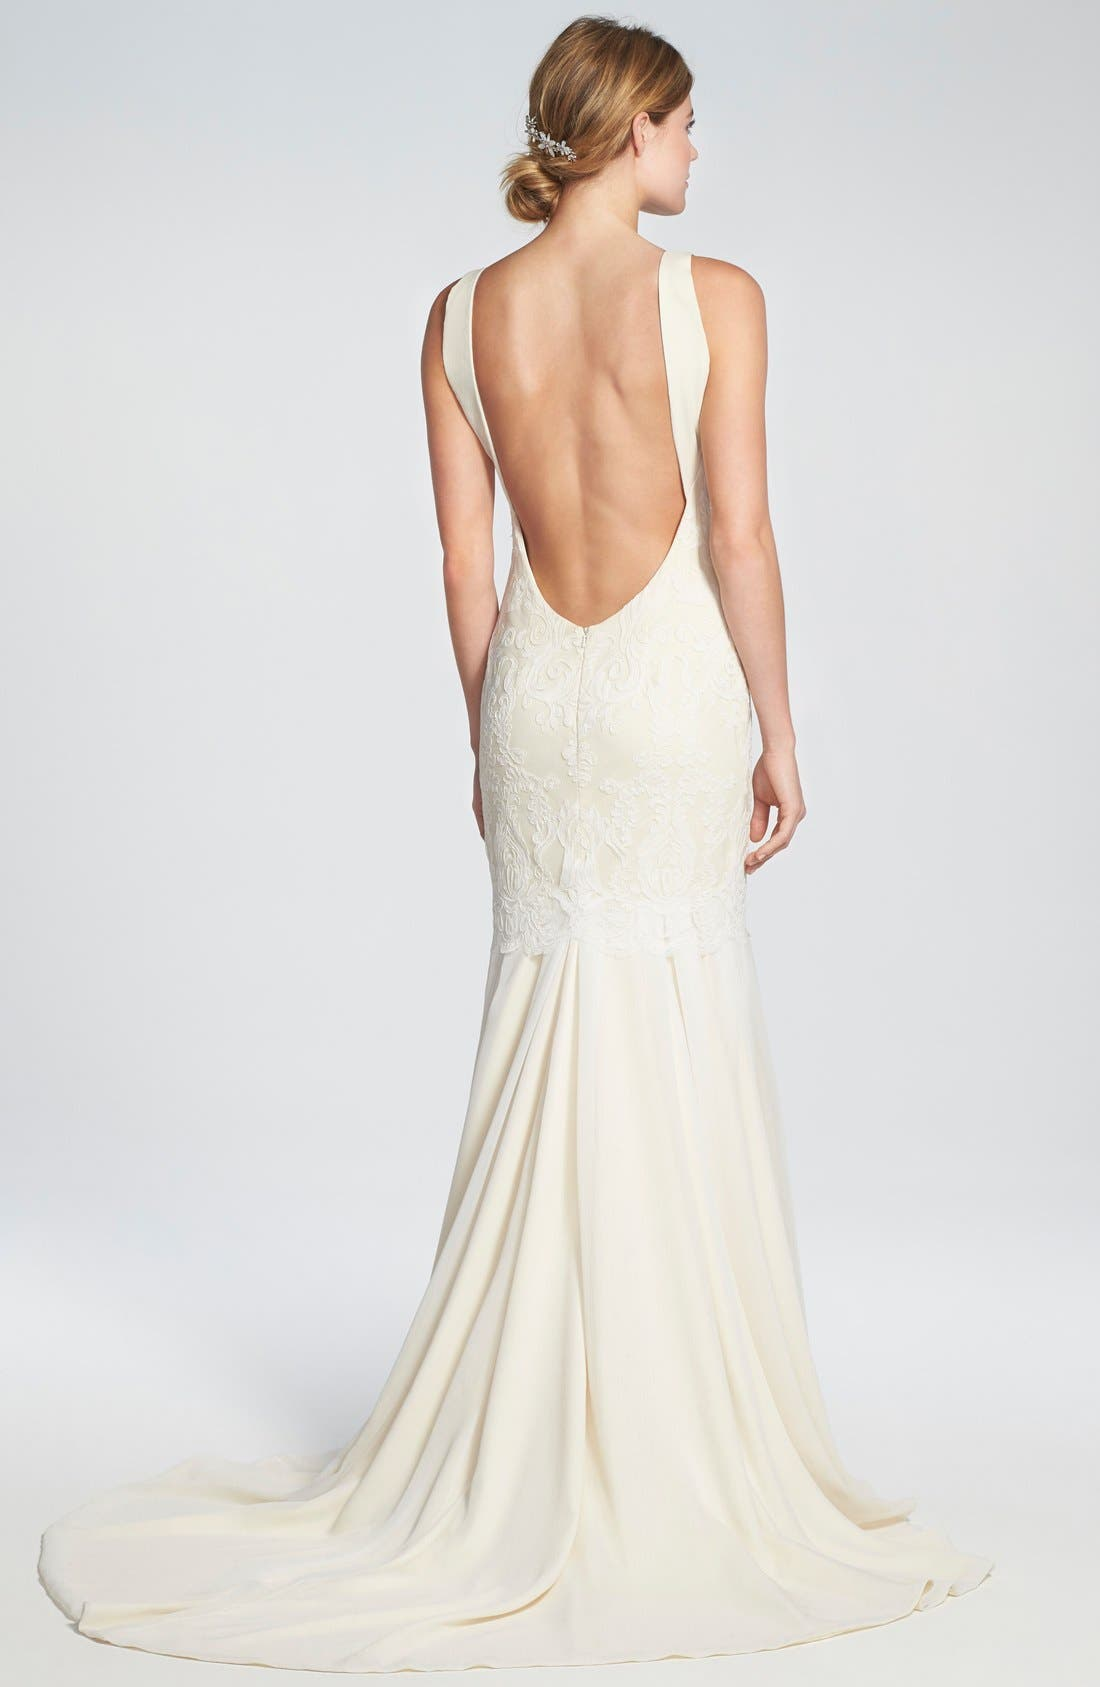 Katie May Wedding Dresses & Bridal Gowns | Nordstrom